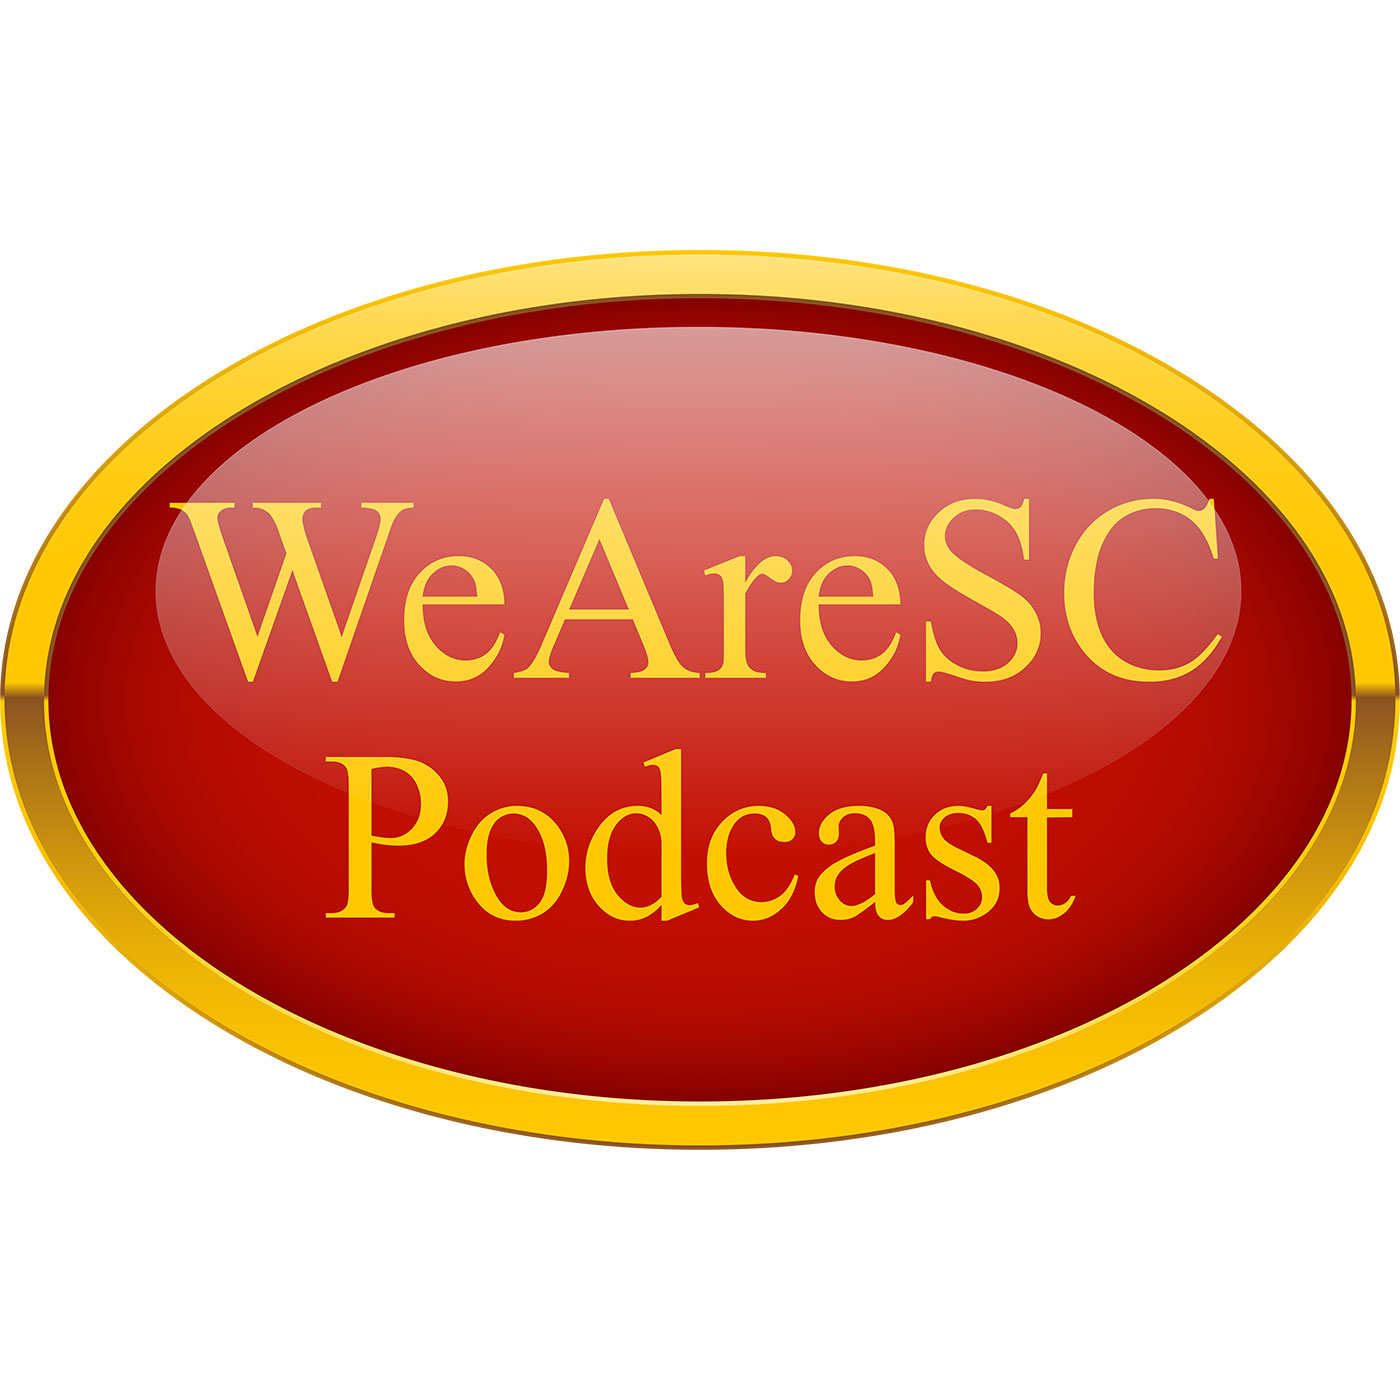 Podcast coverage of the USC Trojans from the WeAreSC staff